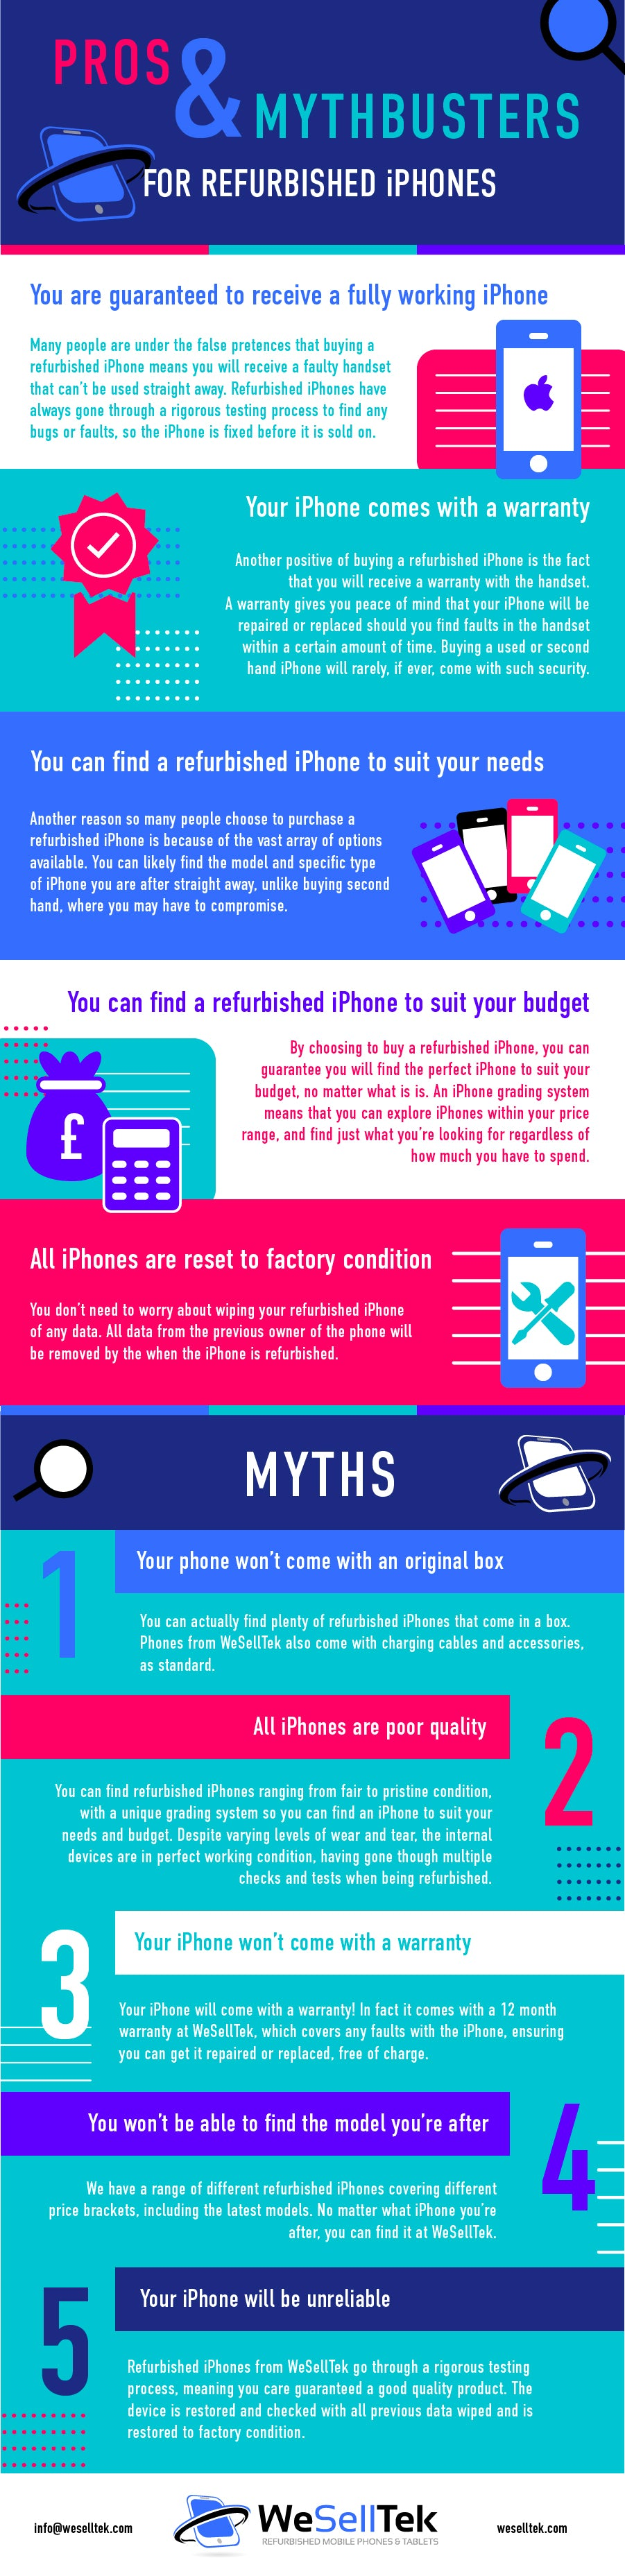 Pros and Myths of Refurbished iPhones